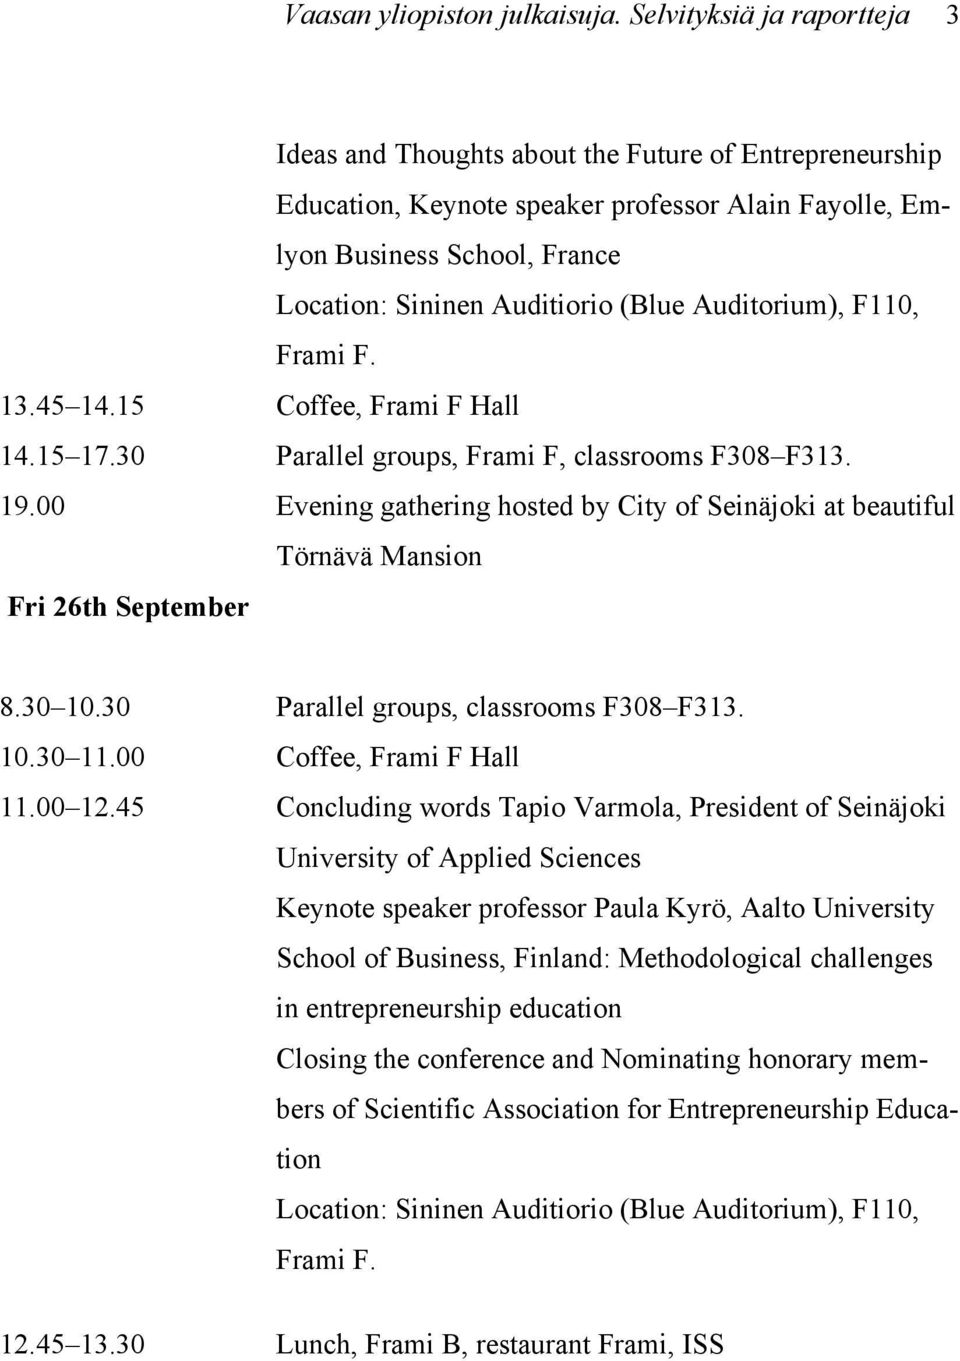 (Blue Auditorium), F110, Frami F. 13.45 14.15 Coffee, Frami F Hall 14.15 17.30 Parallel groups, Frami F, classrooms F308 F313. 19.